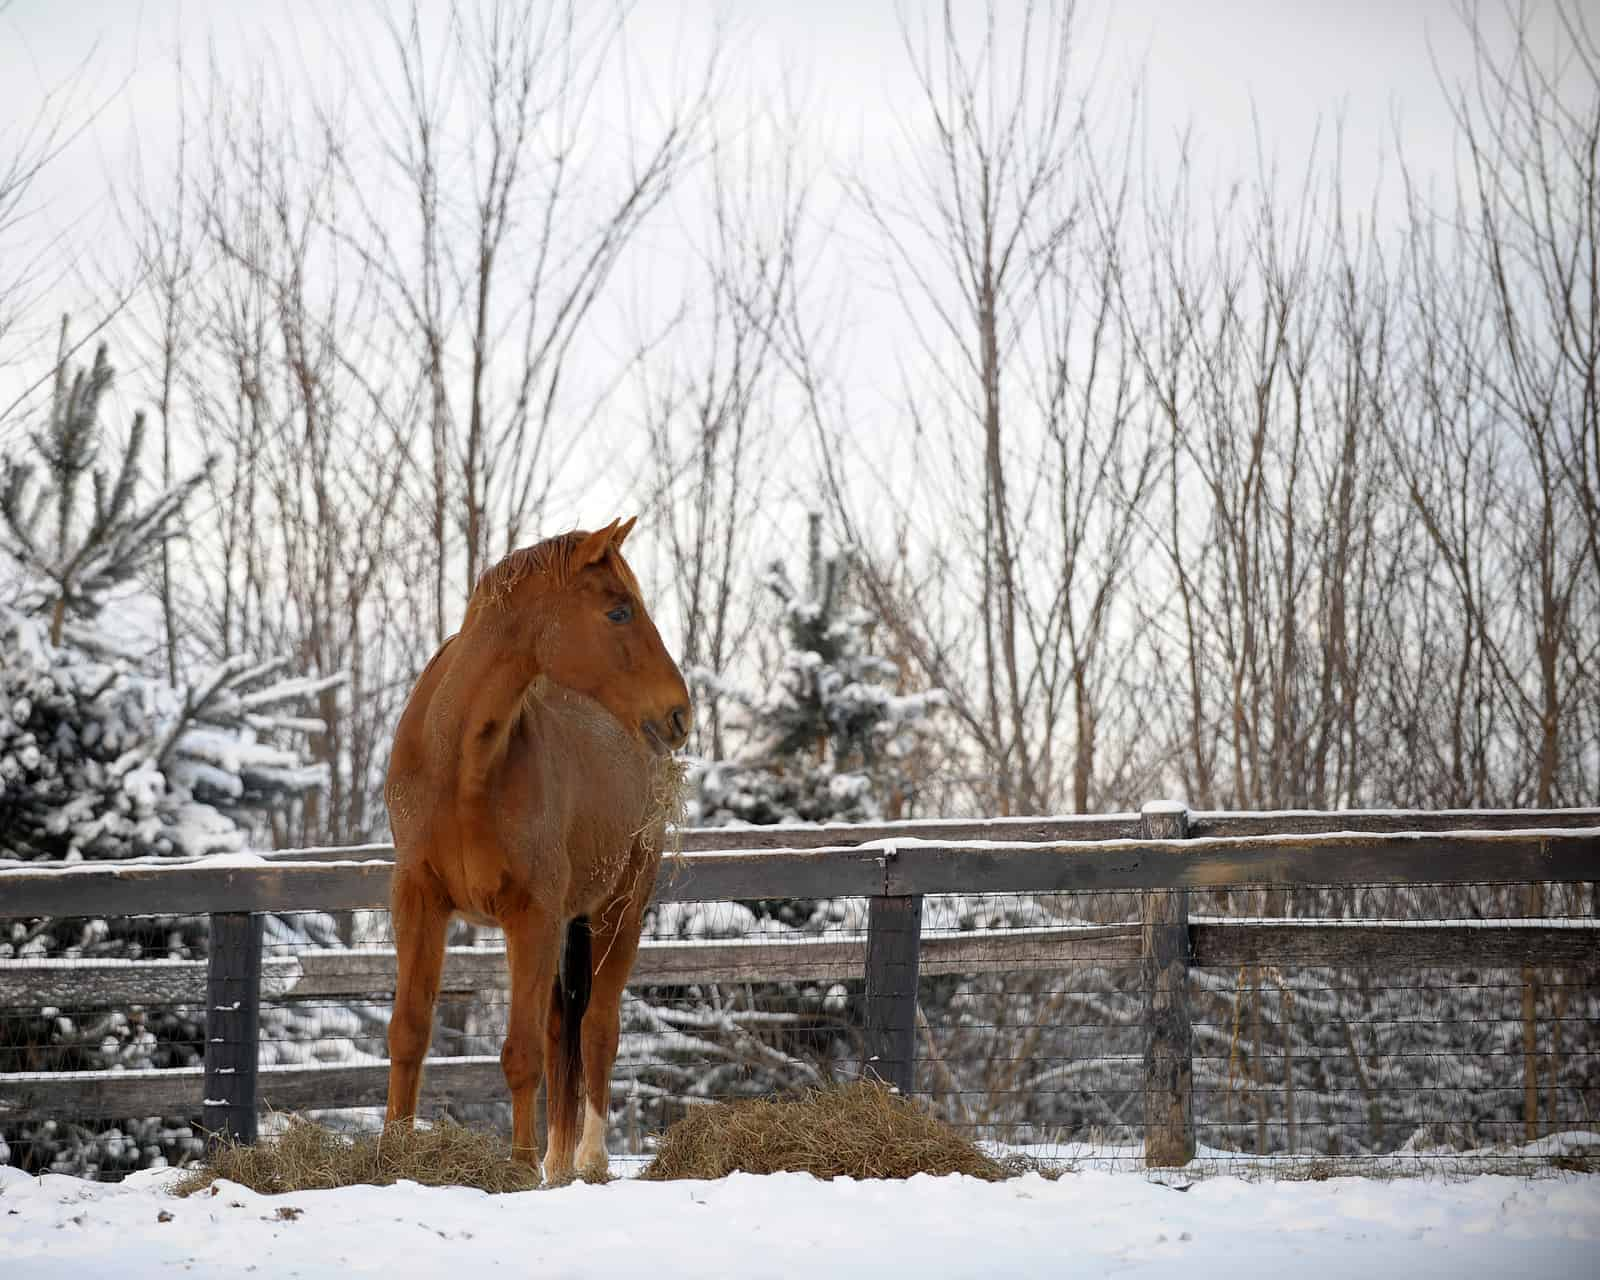 Keeping an Older Horse in Good Weight During Winter